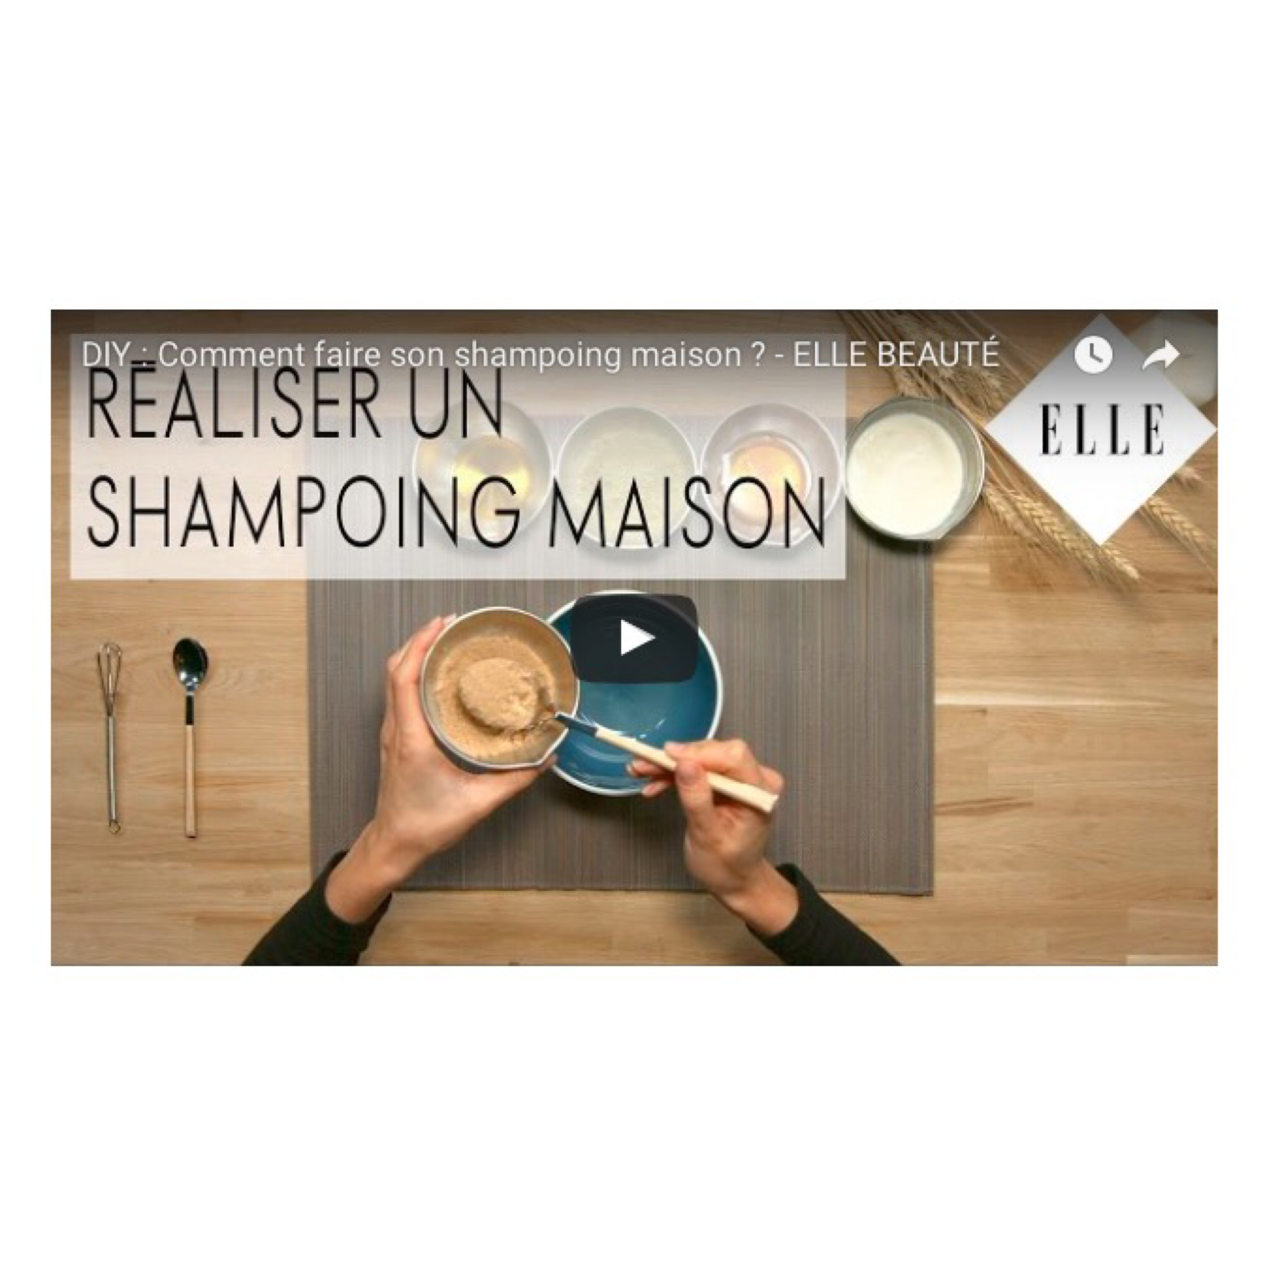 DIY : comment faire son shampoing maison ?